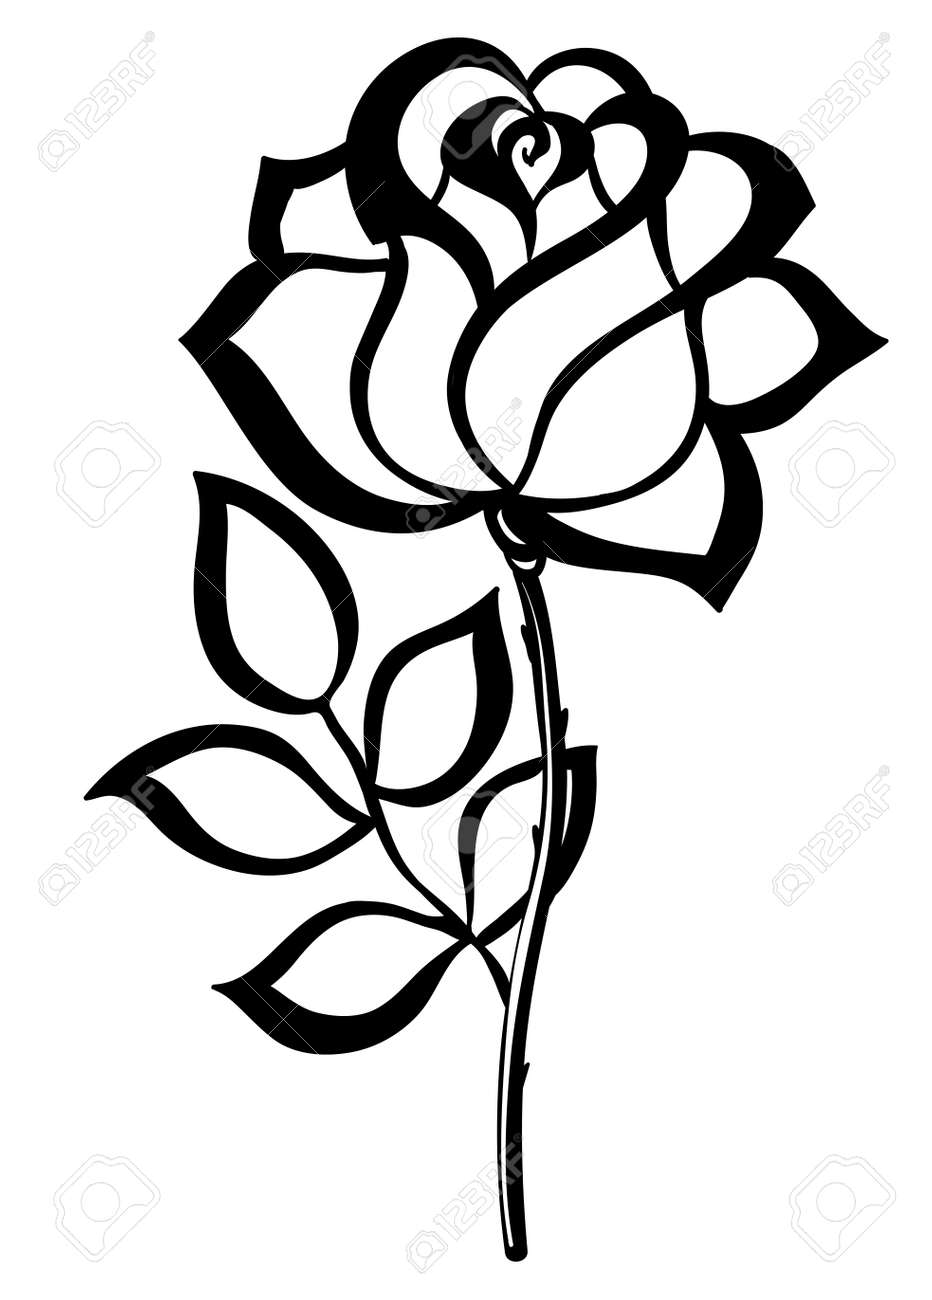 black silhouette outline rose, isolated on white Many similarities in the profile of the artist - 22032847